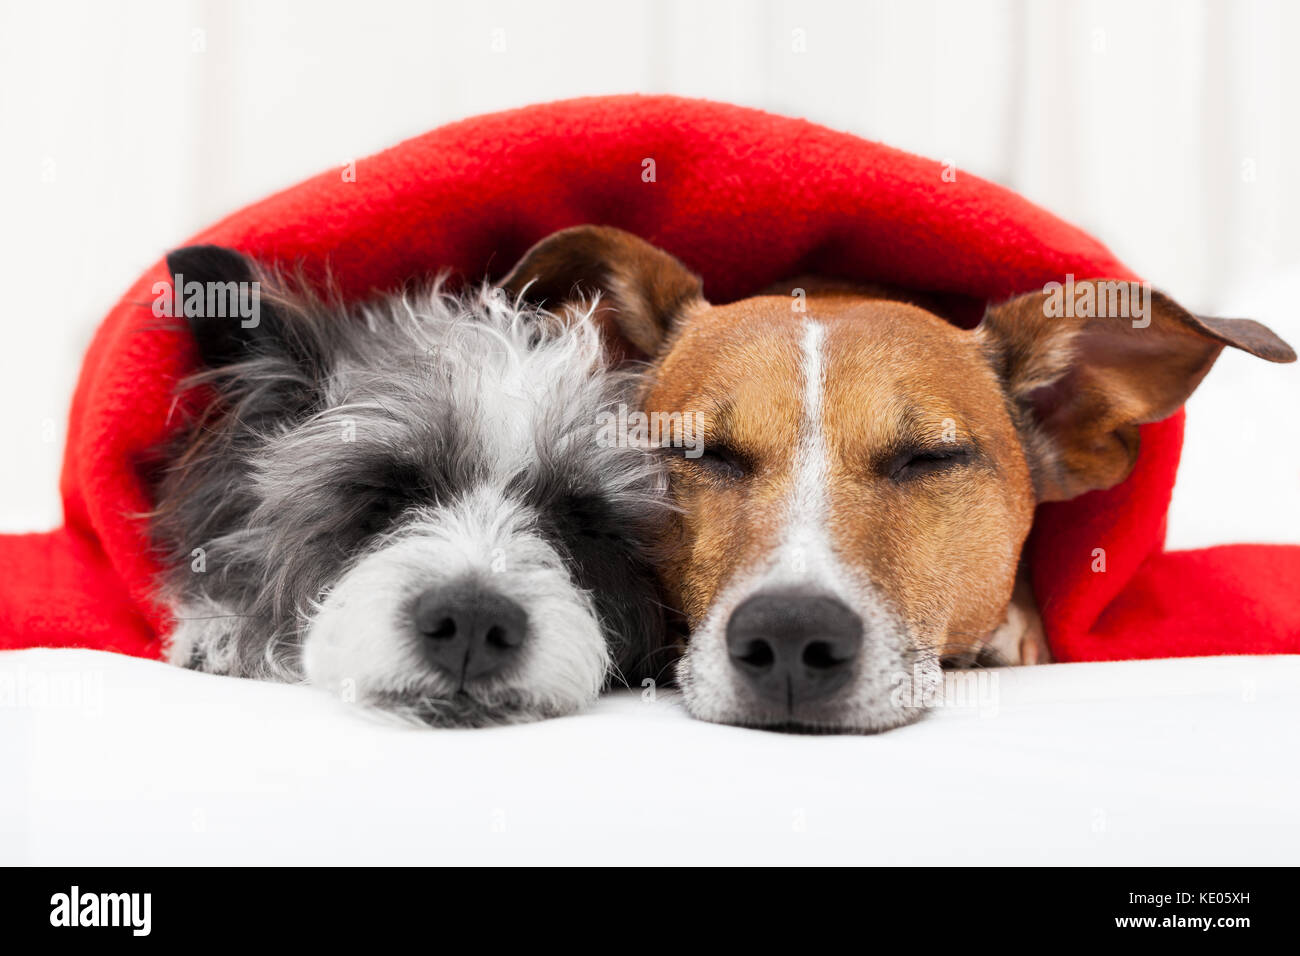 couple of loving dogs in bed close together - Stock Image